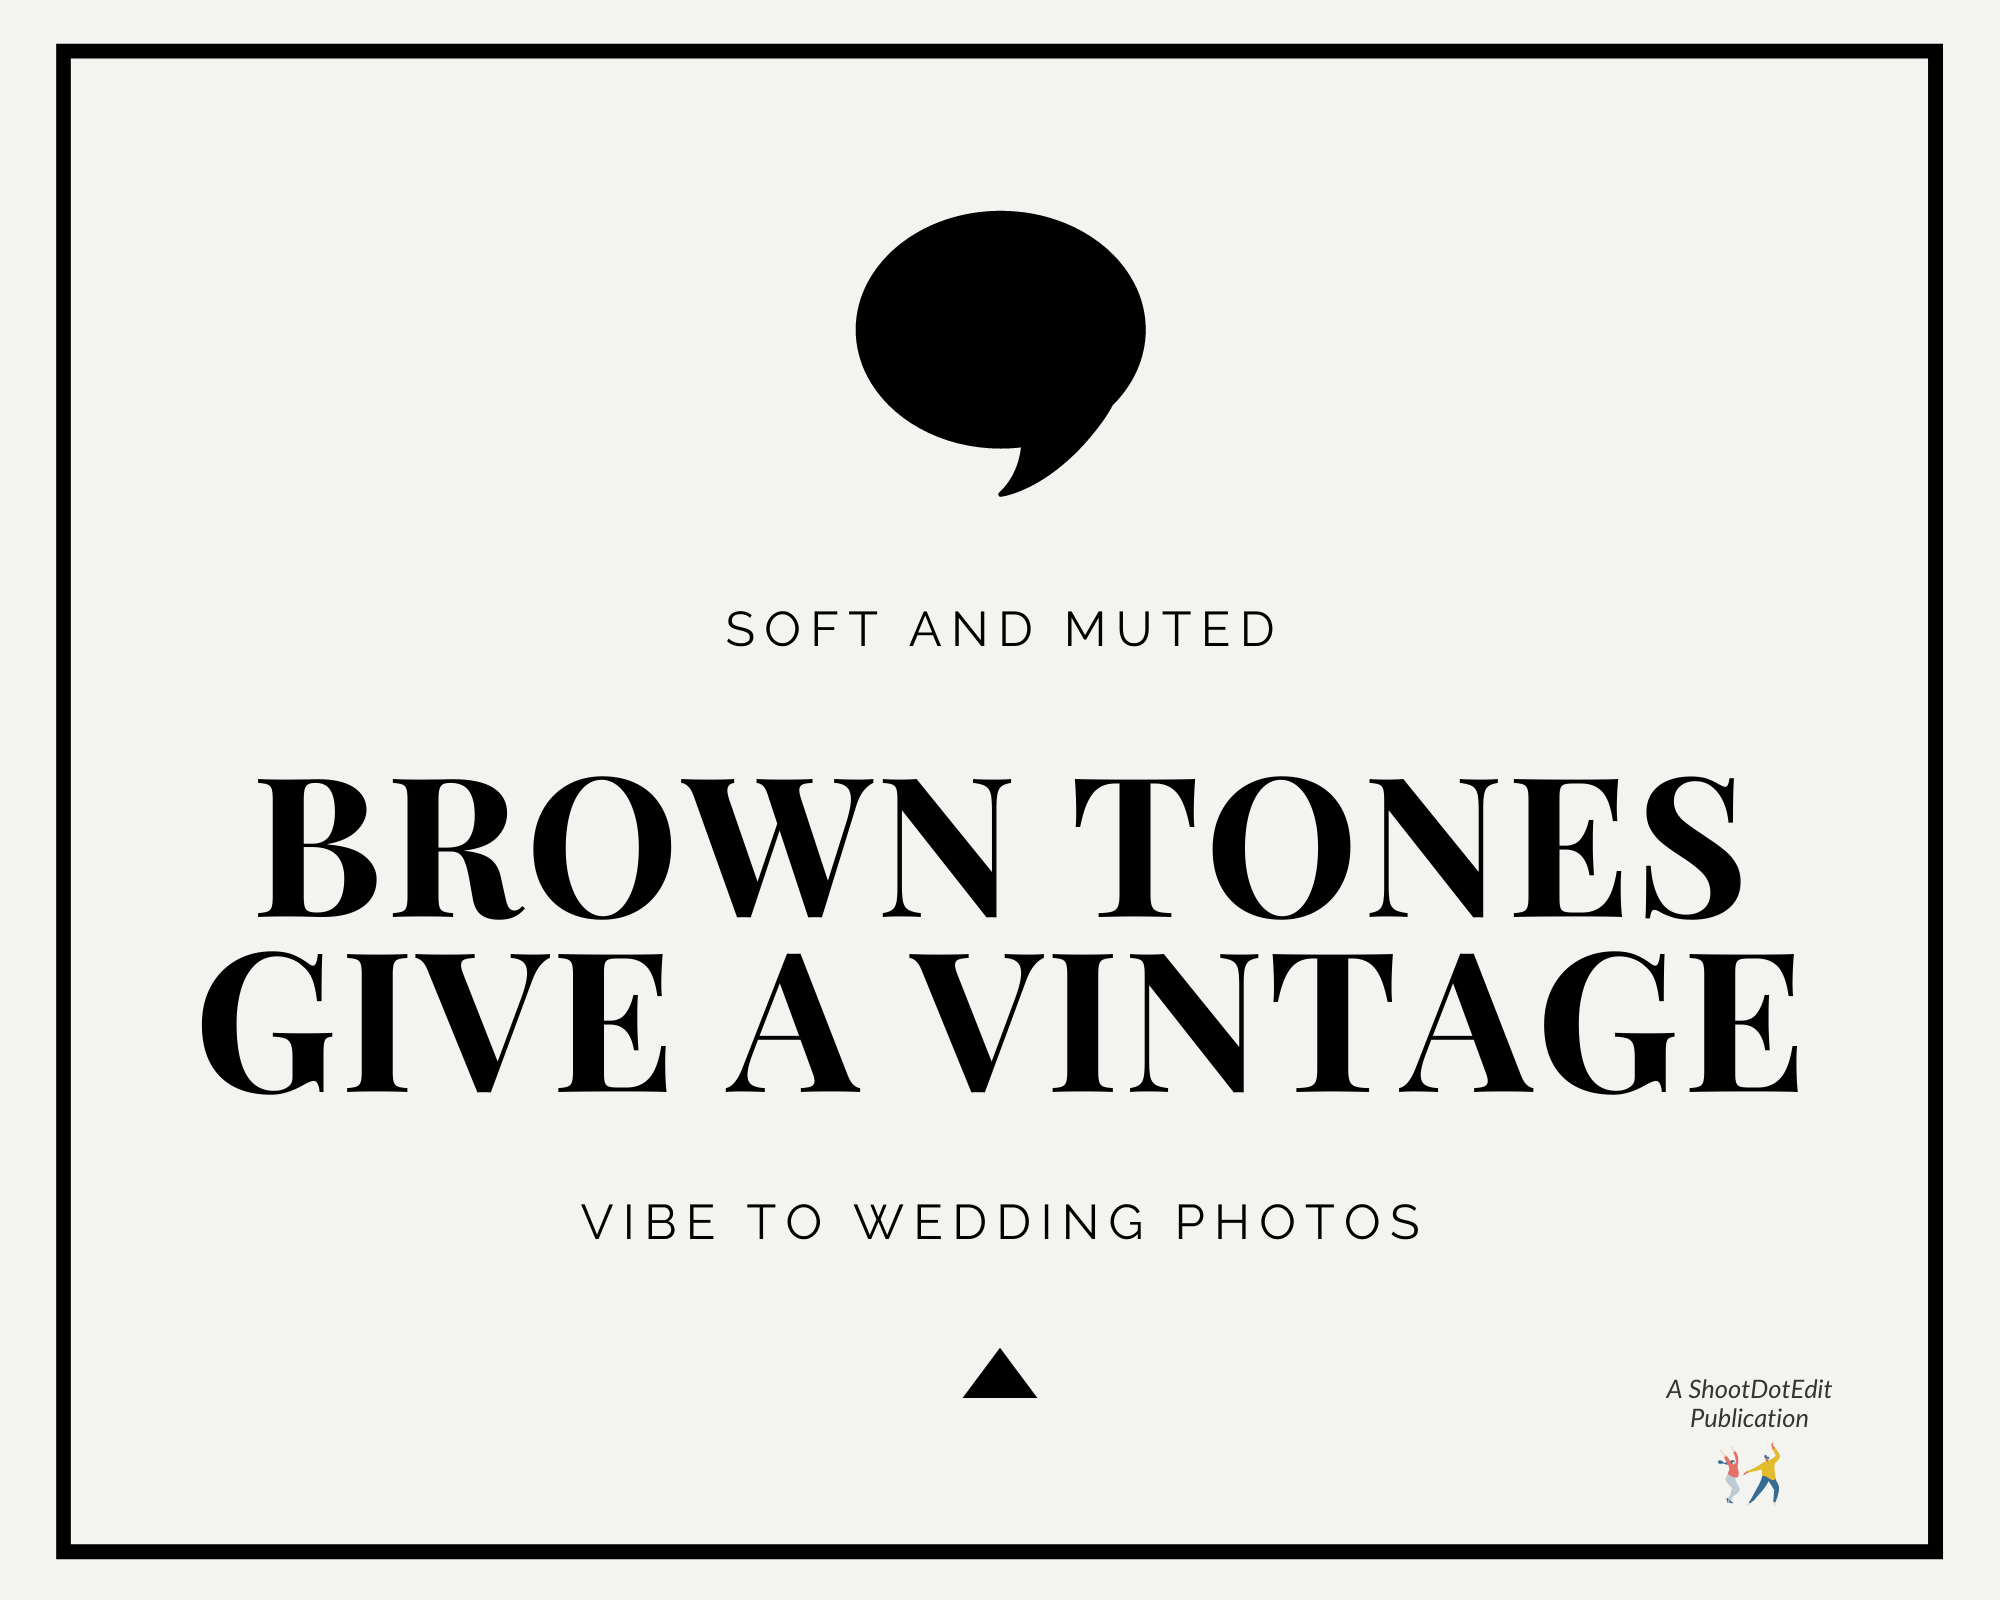 Infographic stating soft and muted brown tones give a vintage vibe to wedding photos